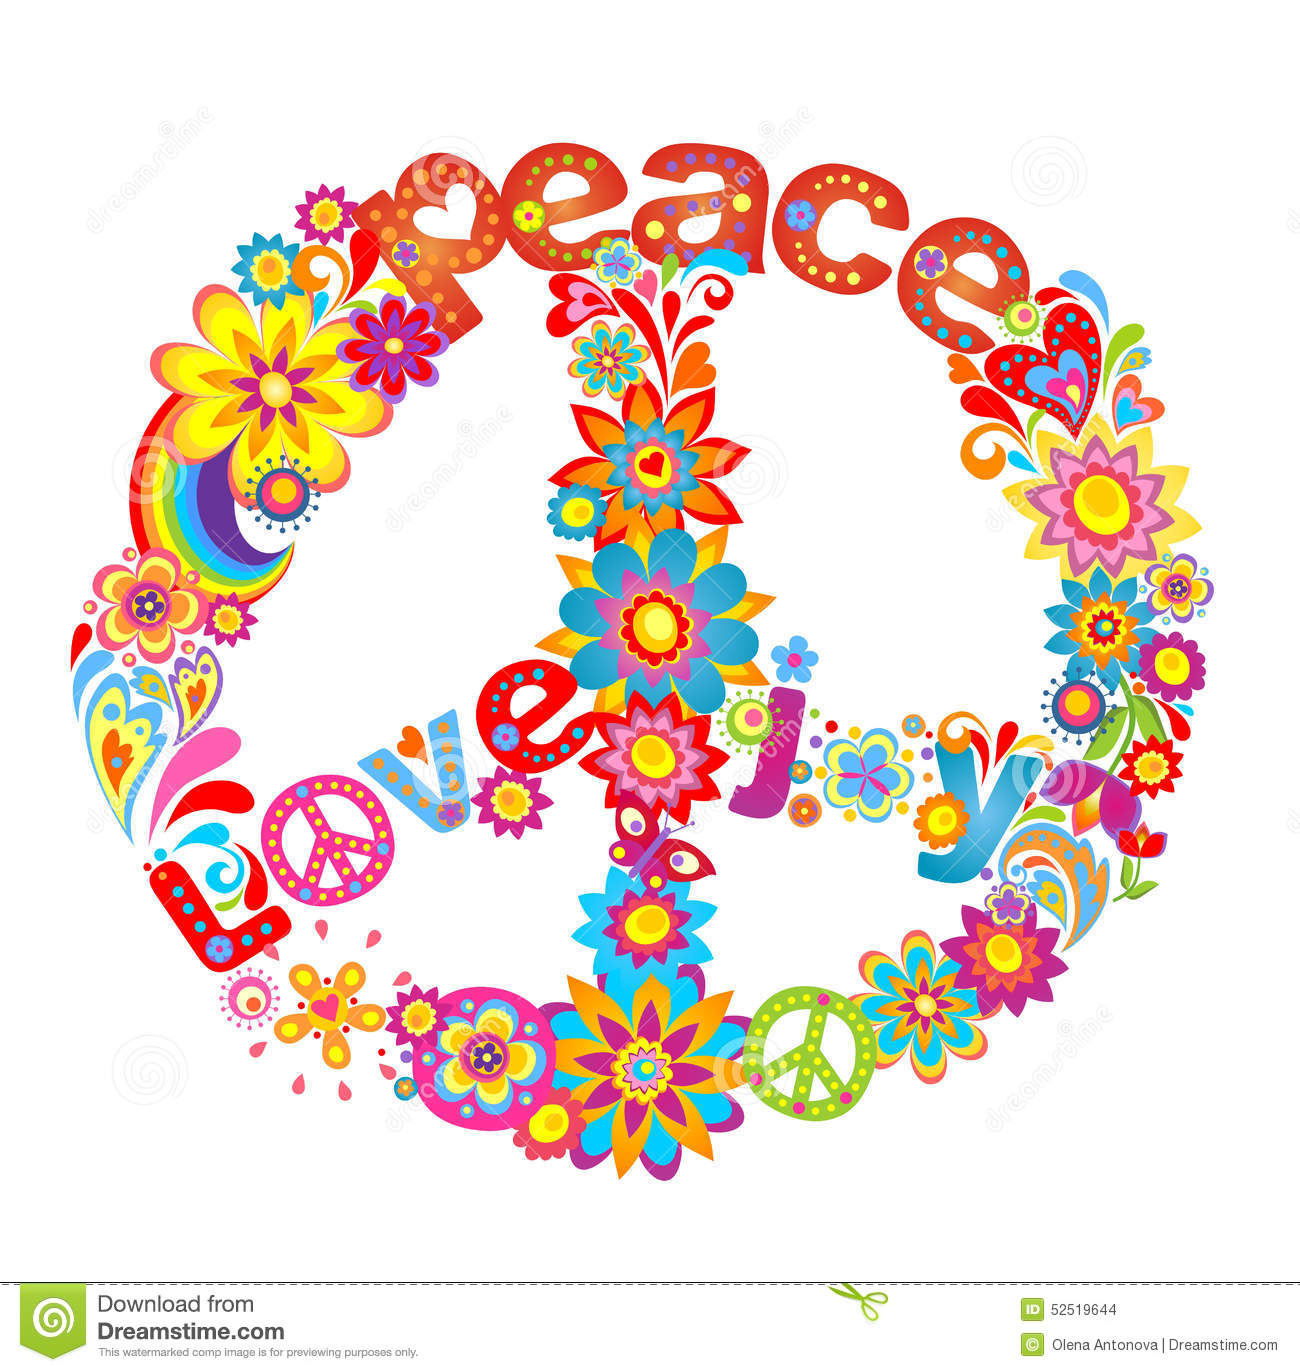 Peace flower symbol stock vector illustration of happiness 52519644 peace flower symbol biocorpaavc